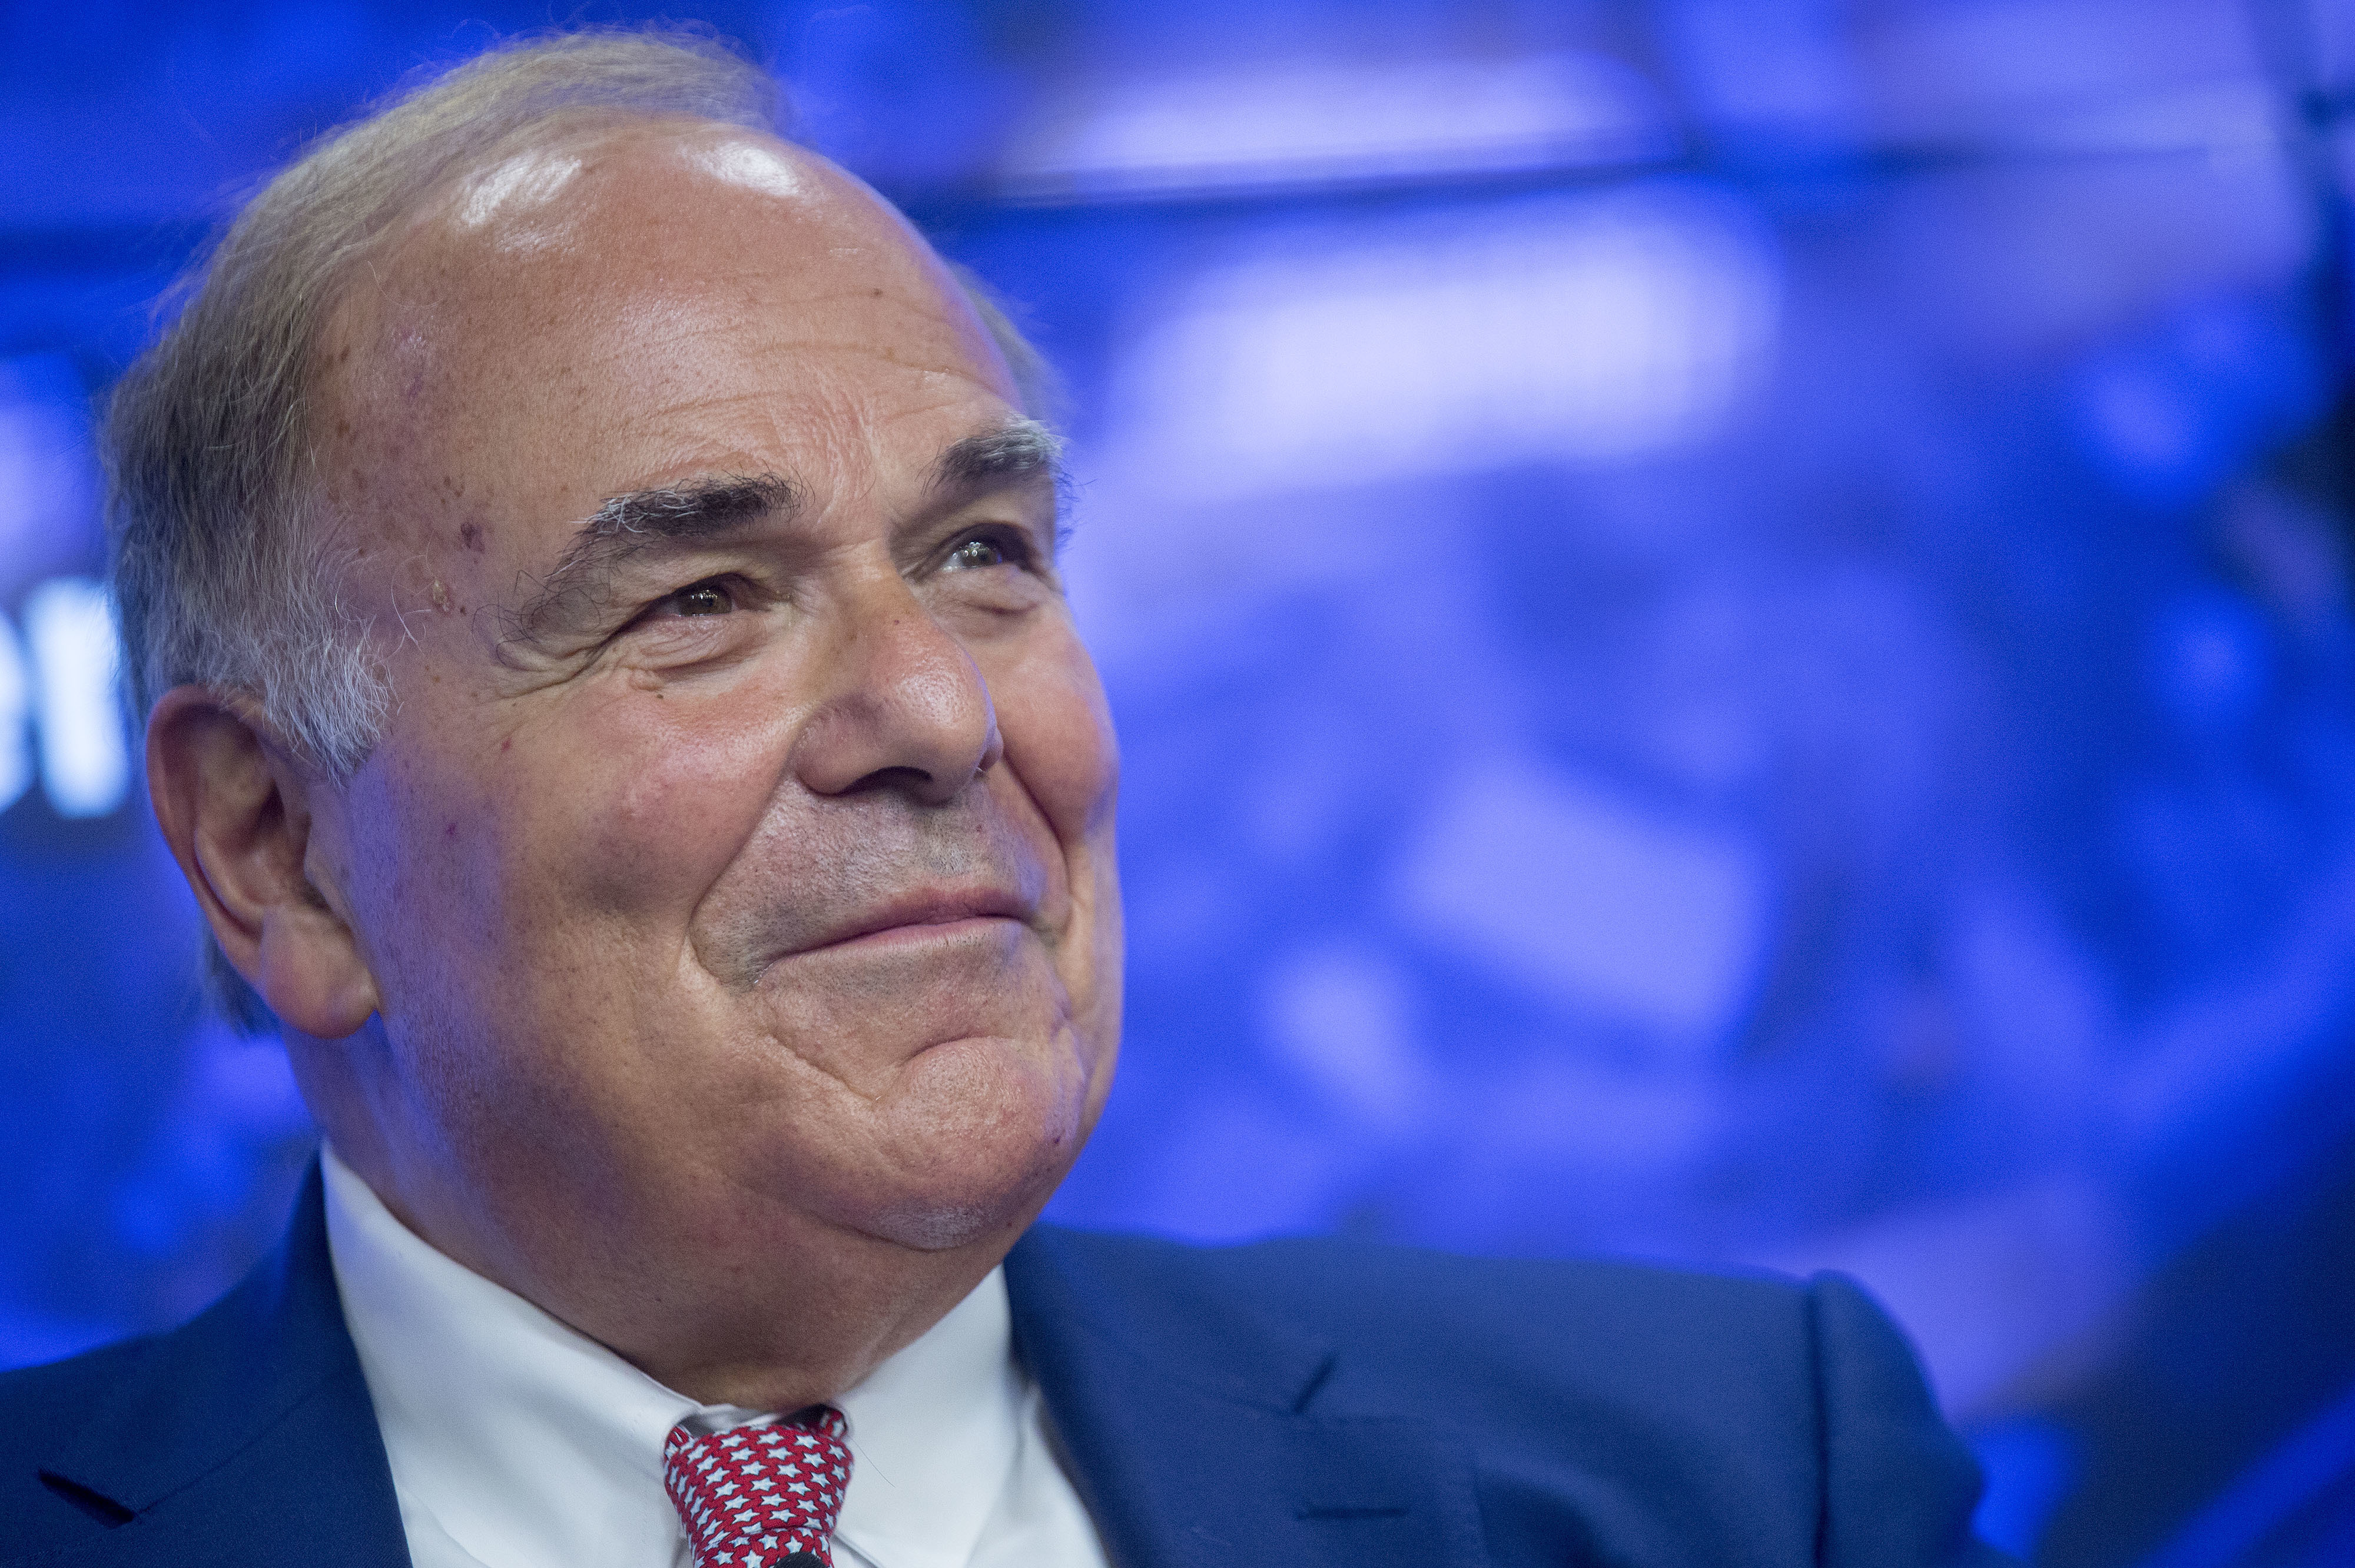 Ed Rendell, former governor of Pennsylvania, has taken a strong stand on supervised injection sites.